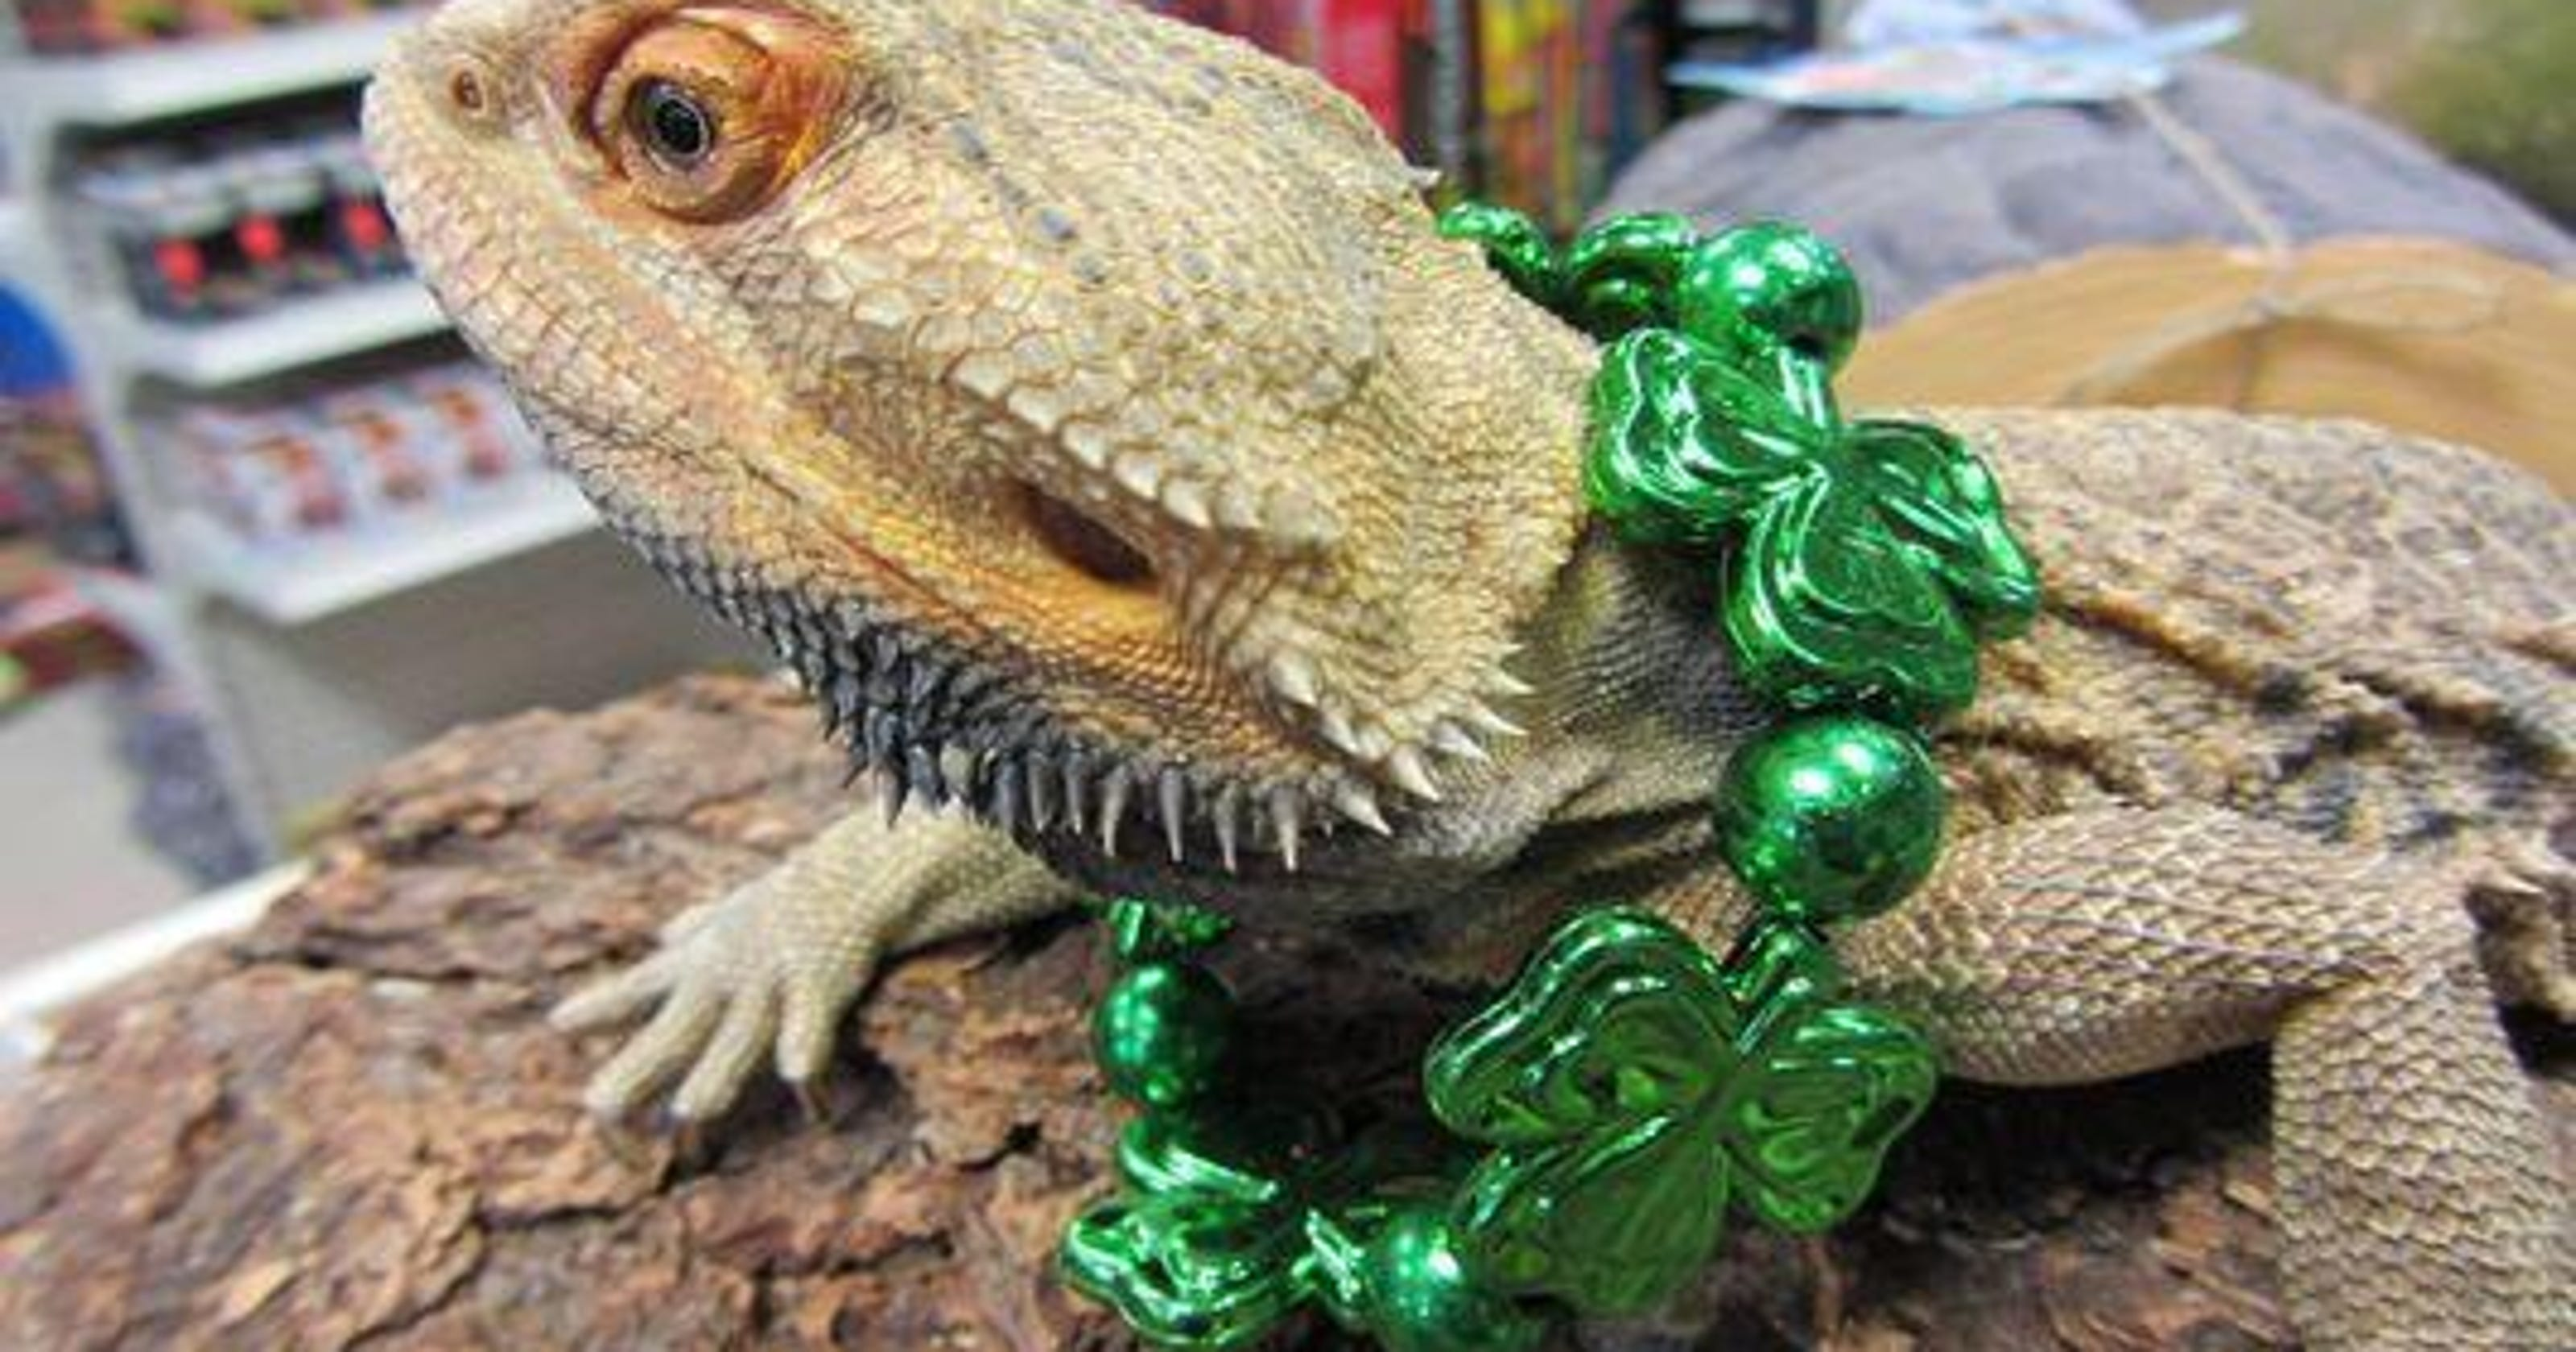 Livonia pet store recovers some of its stolen reptiles